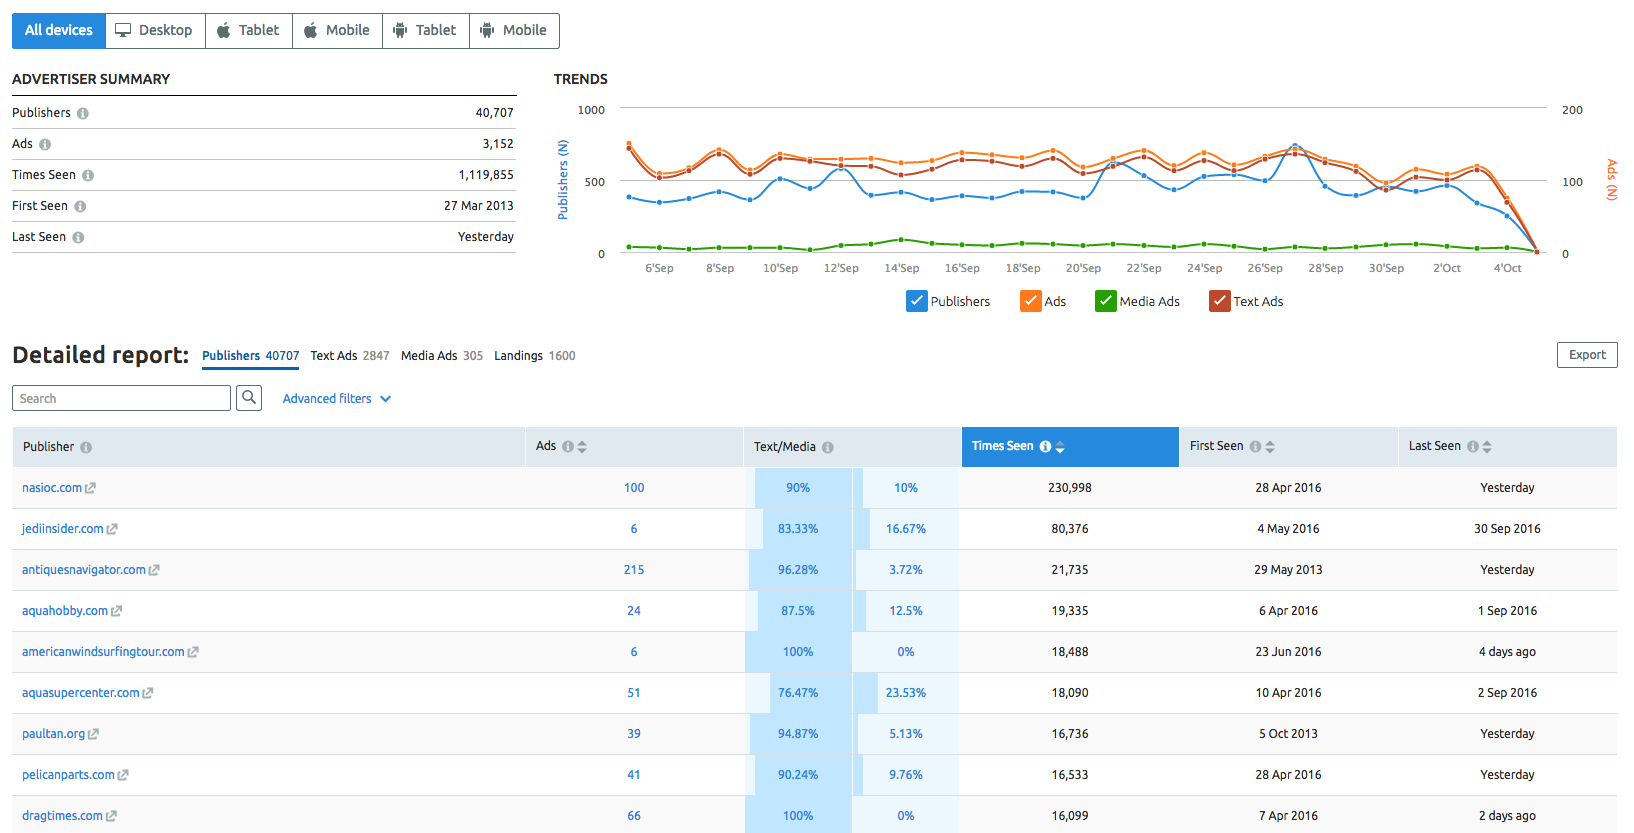 SEMrush: Display Advertising Is Getting a Second Wind image 3